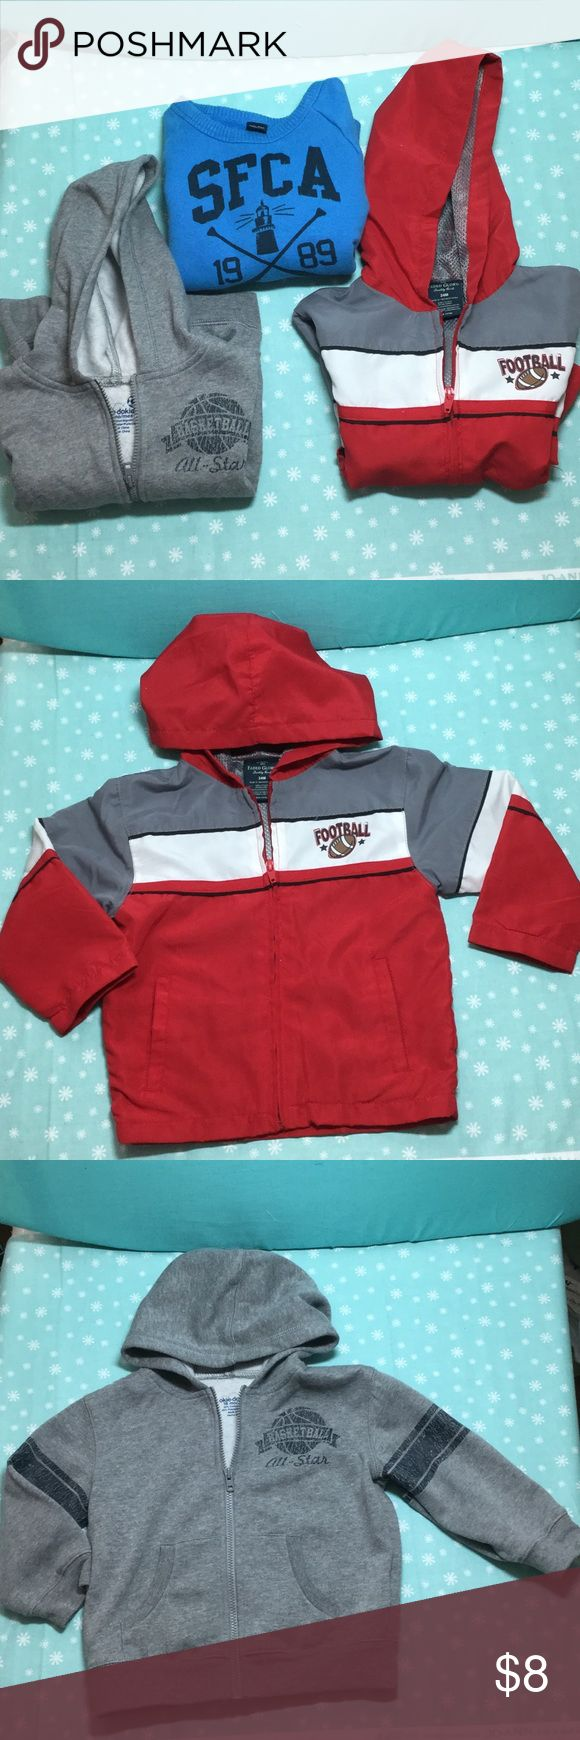 Reduced!!  Lot of 3 Shirts 3 Pieces! One Price!!! Faded Glory Football jacket w/ hood & pockets (24m), Okie-Dokie Basketball Sweat Jacket w/ hood & pockets (18m), Blue Baby Gap Sweatshirt (18-24m). okie dokie, Baby Gap, Faded Glory Jackets & Coats